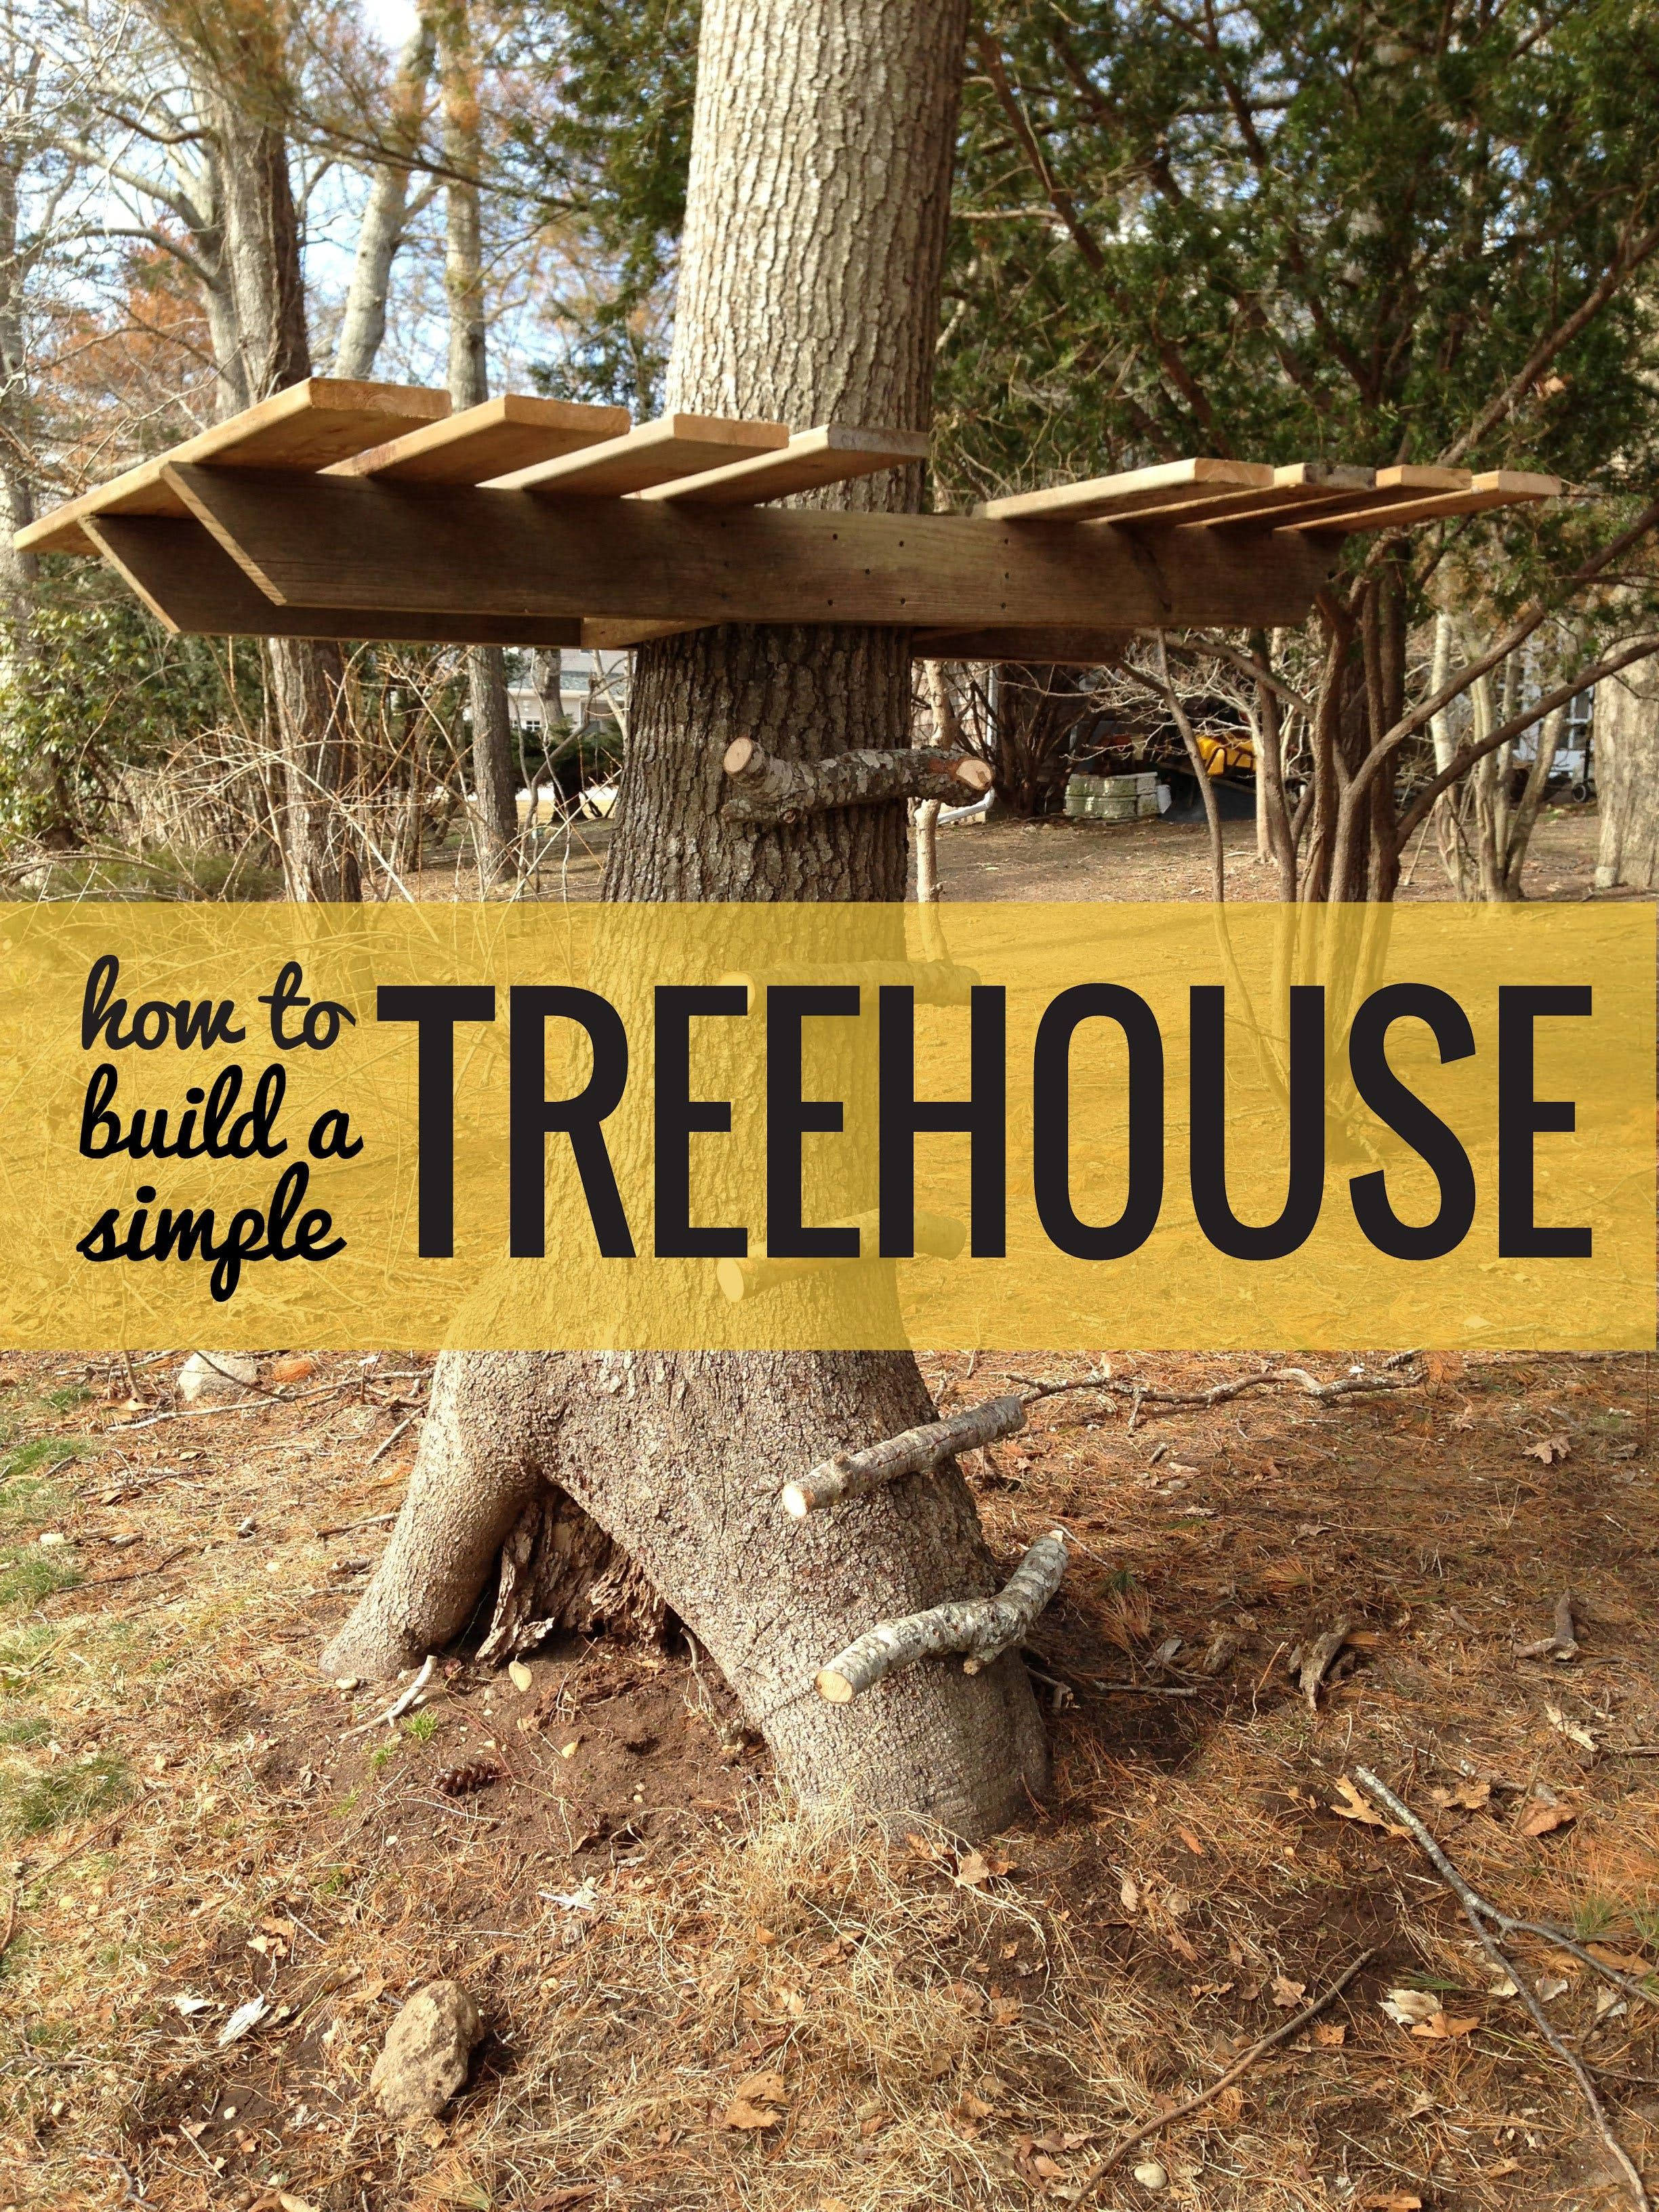 how to build a treehouse u2014 apartment therapy tutorials treehouse